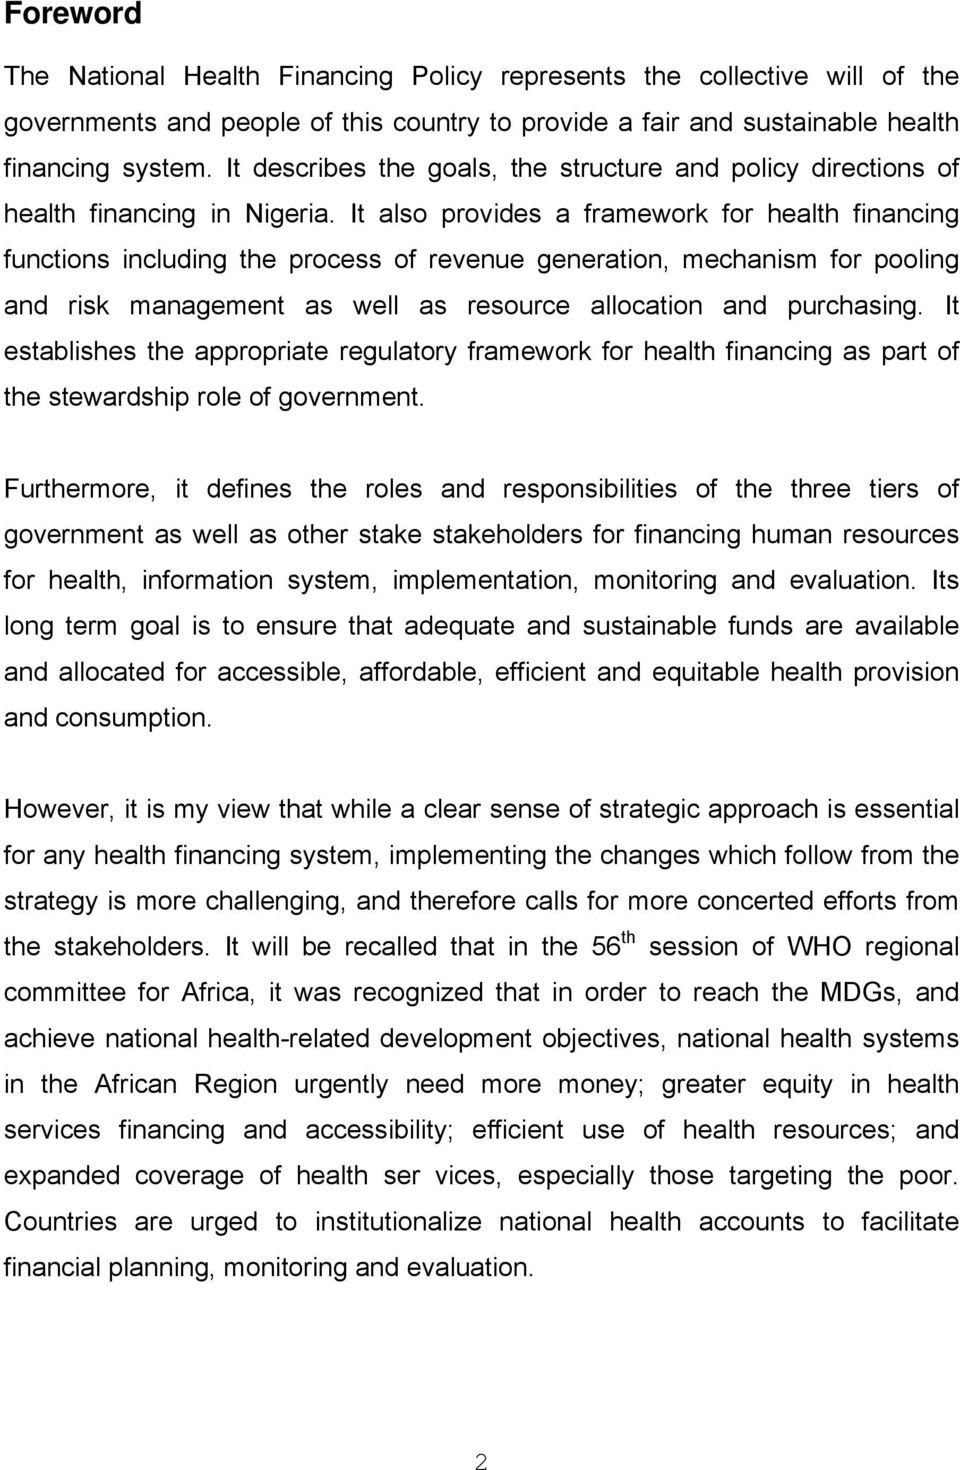 It also provides a framework for health financing functions including the process of revenue generation, mechanism for pooling and risk management as well as resource allocation and purchasing.